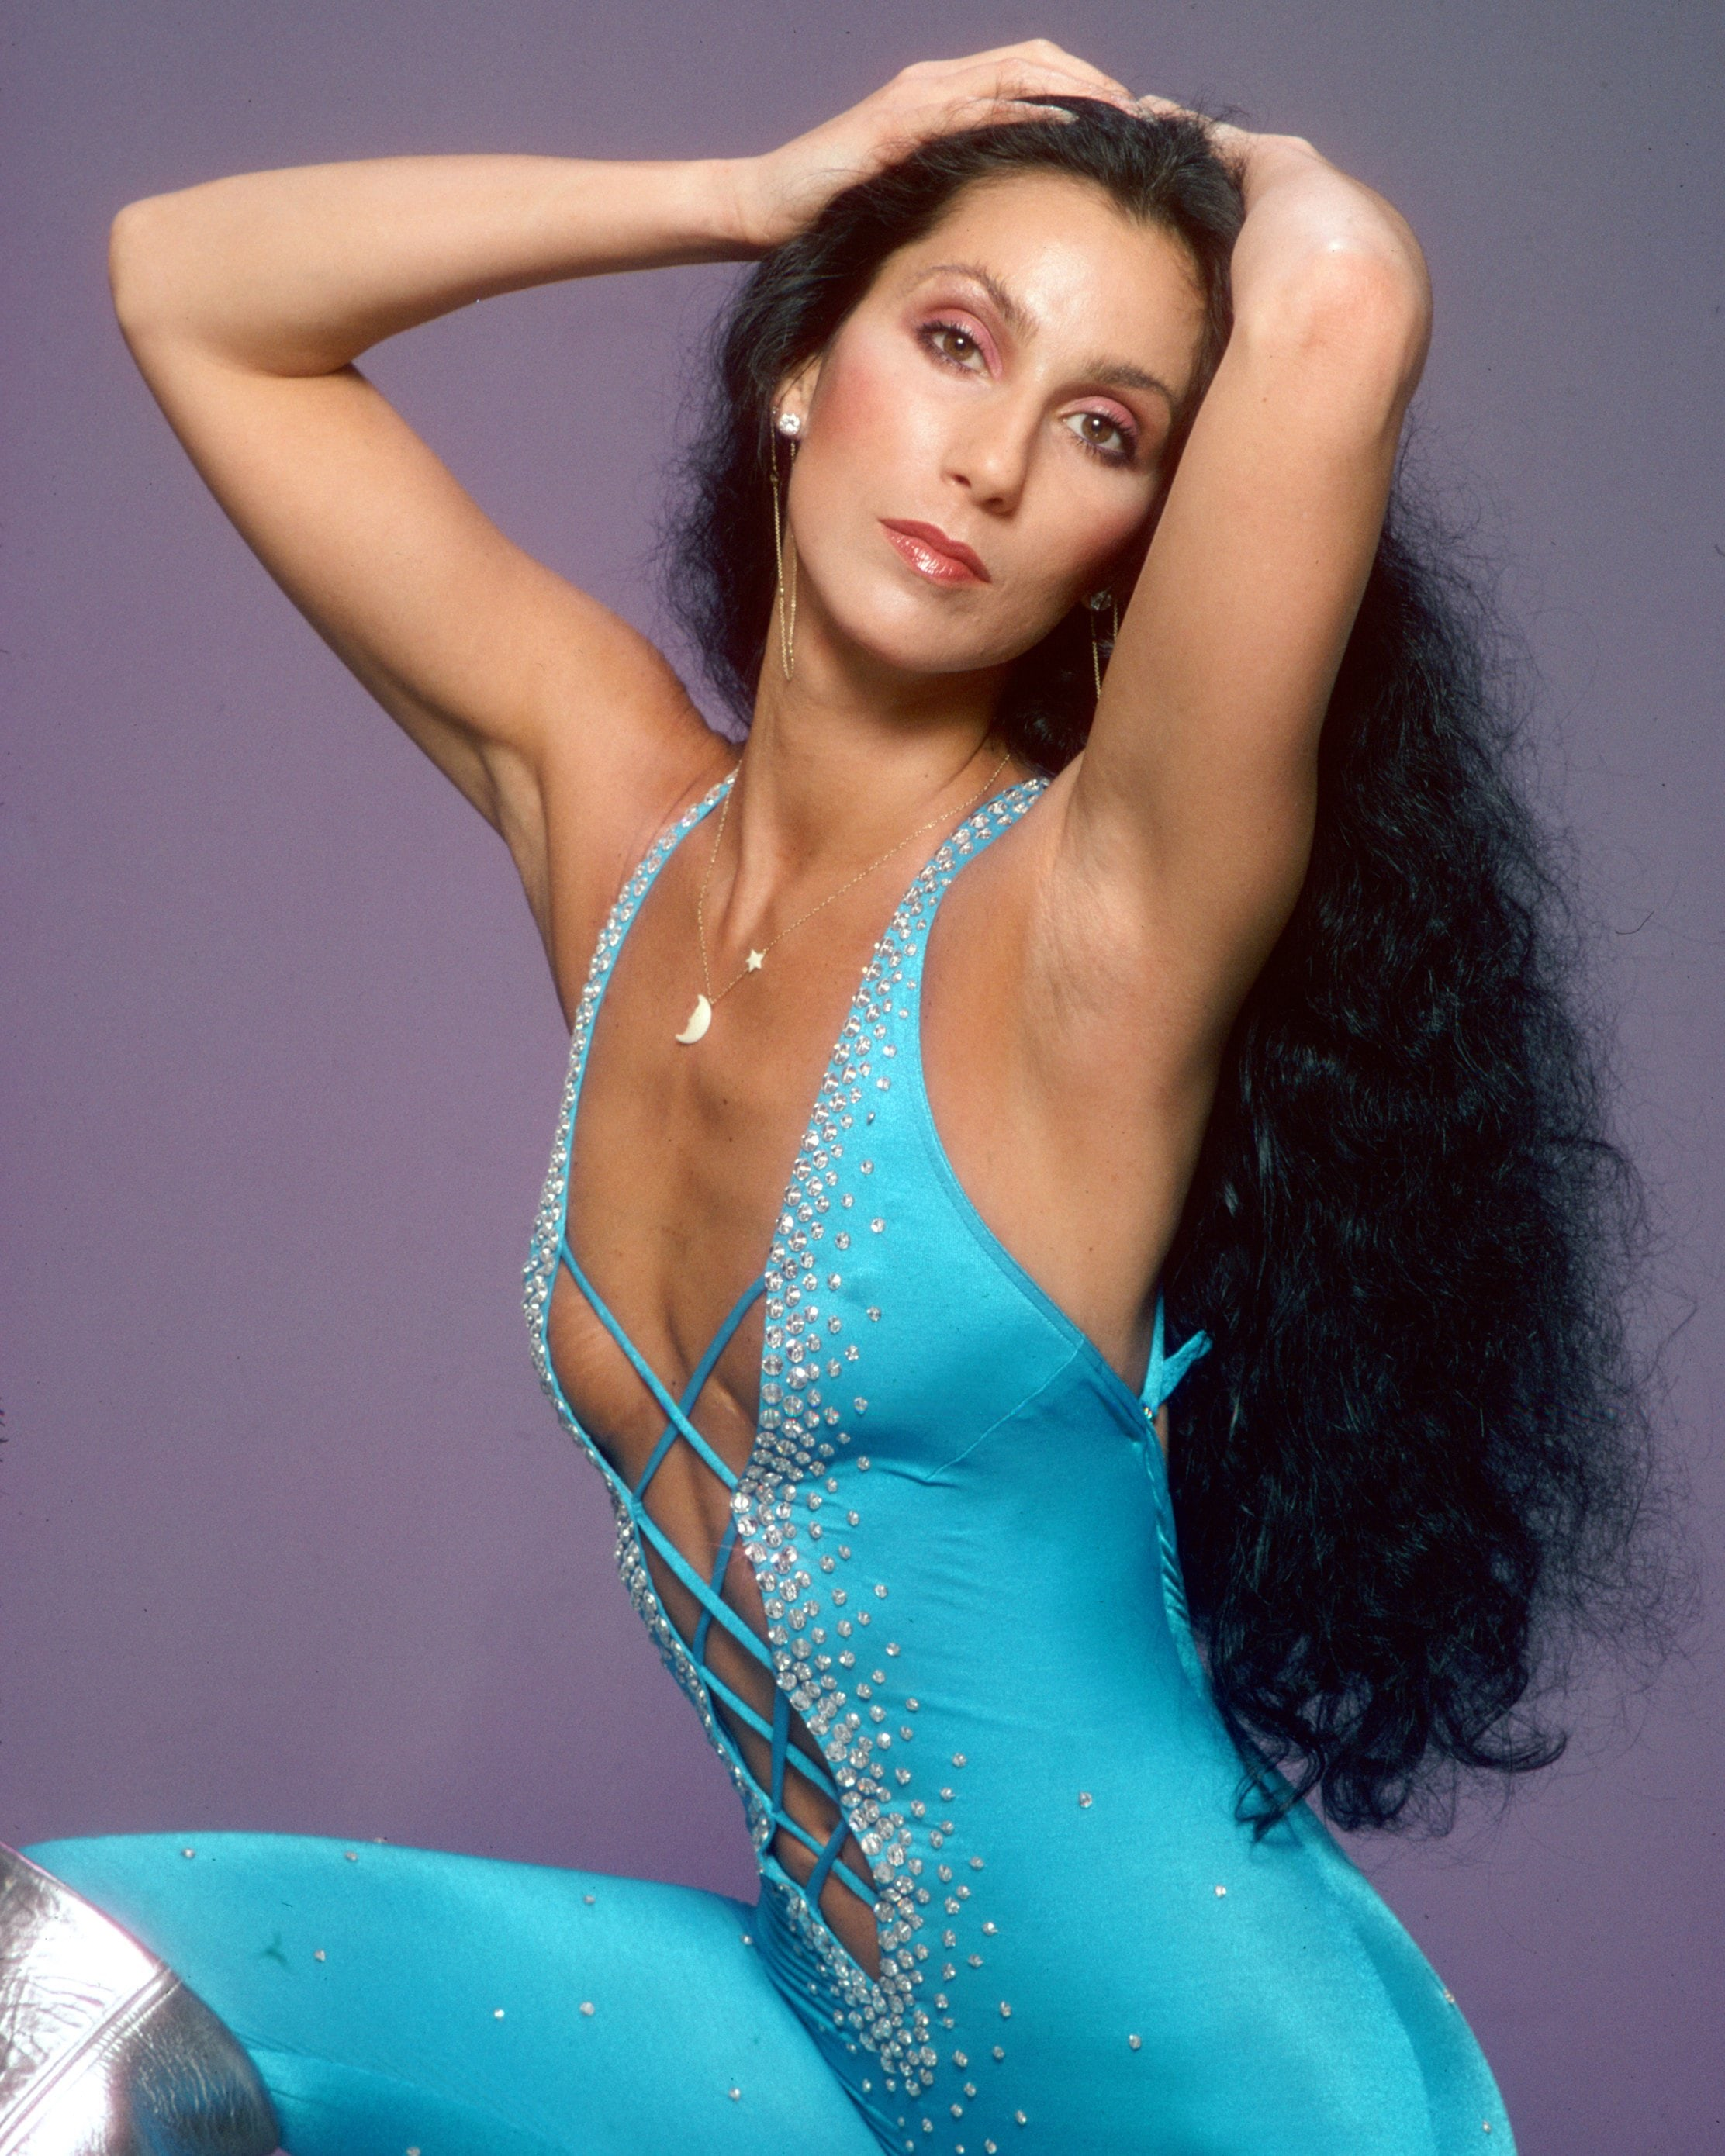 Cher For mobile